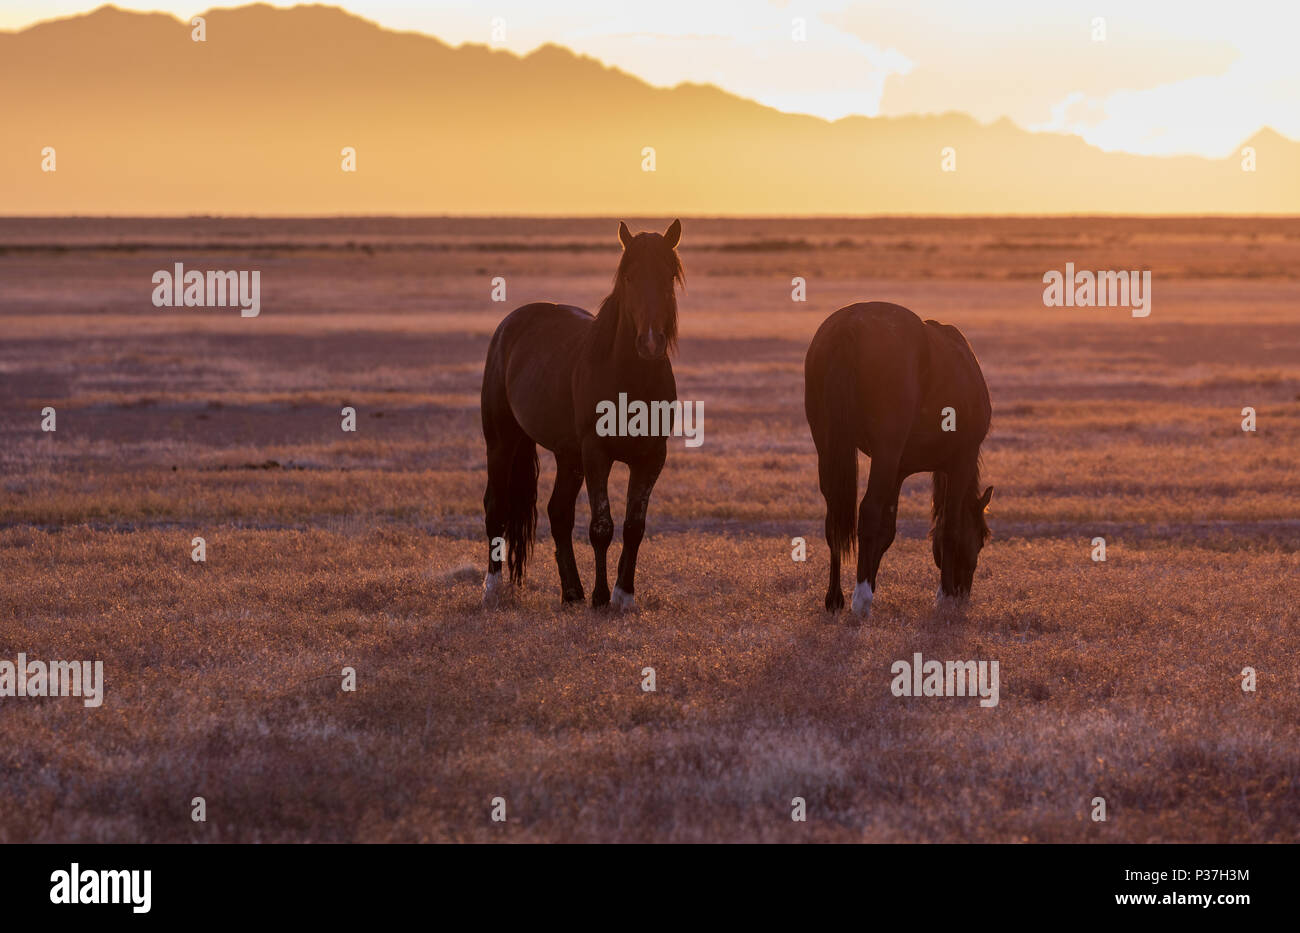 Wild Horses Silhouetted at Sunset Stock Photo